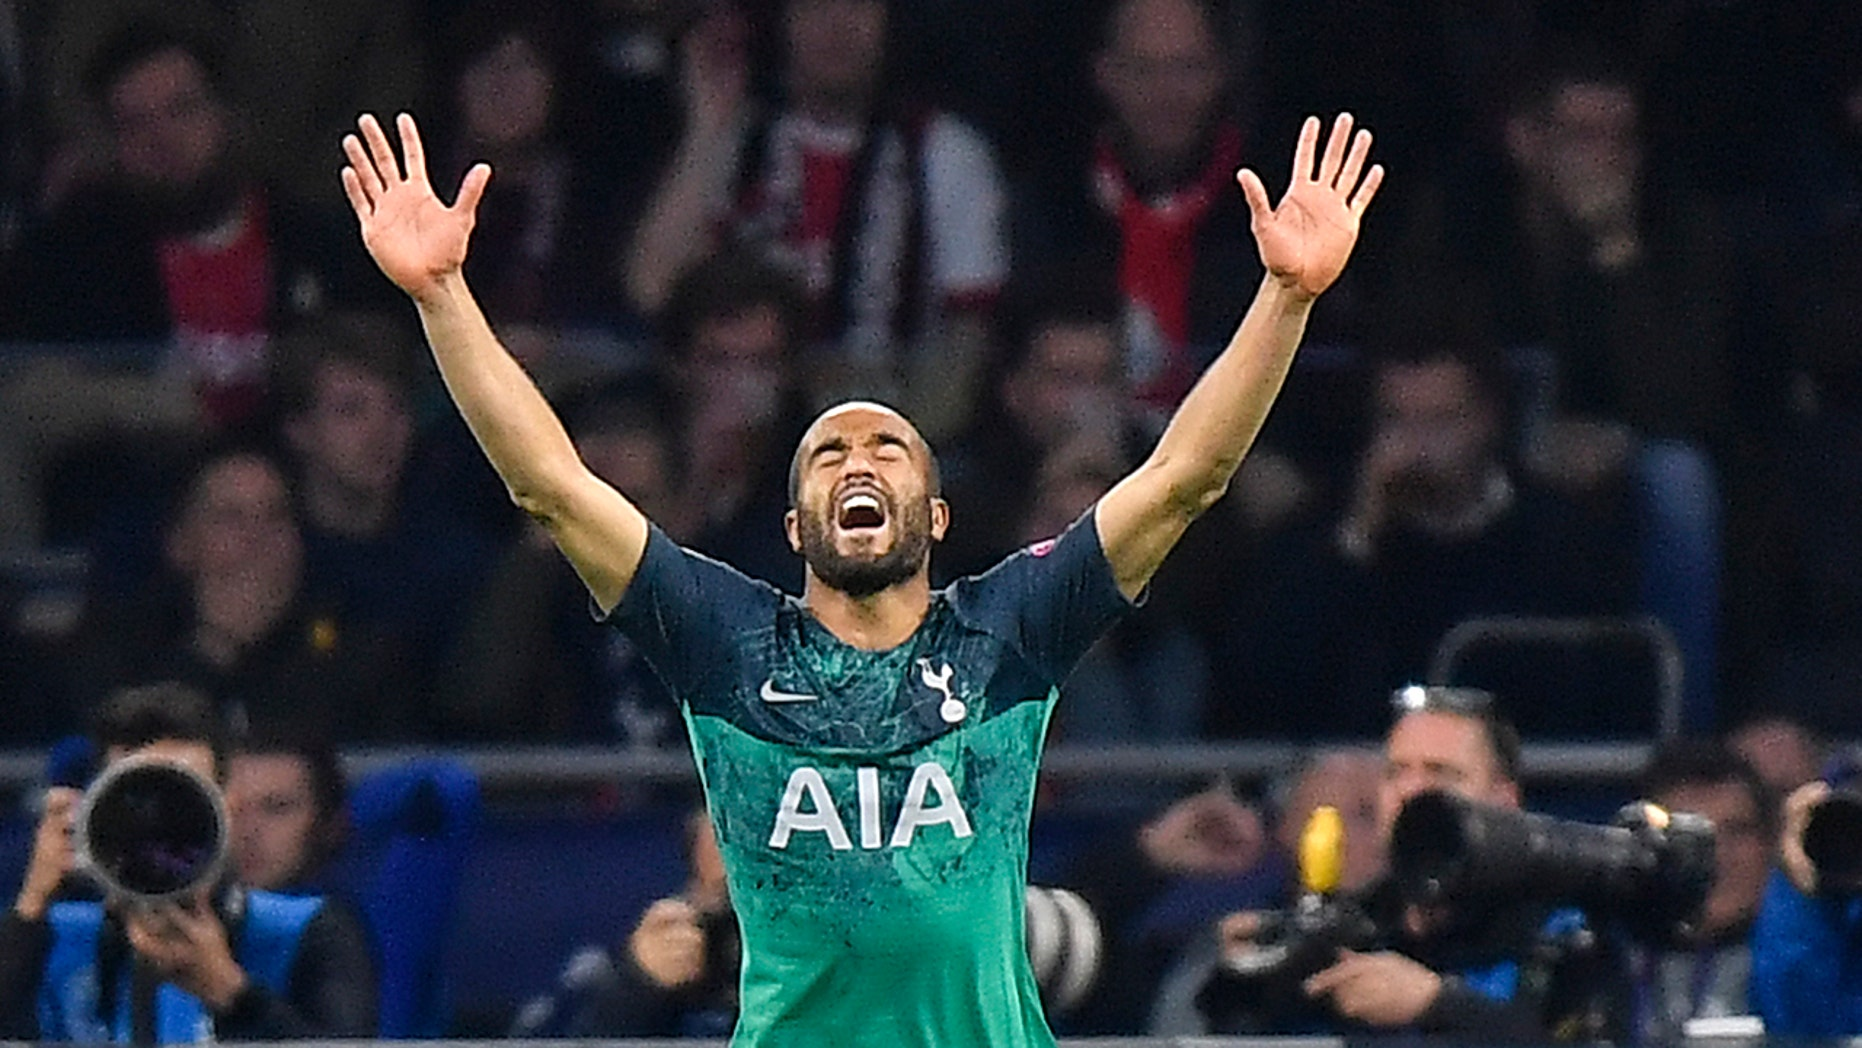 Tottenham's Lucas Moura celebrates after scoring his side's second goal during the Champions League semifinal second leg soccer match between Ajax and Tottenham Hotspur at the Johan Cruyff ArenA in Amsterdam, Netherlands, Wednesday, May 8, 2019. (AP Photo/Martin Meissner)